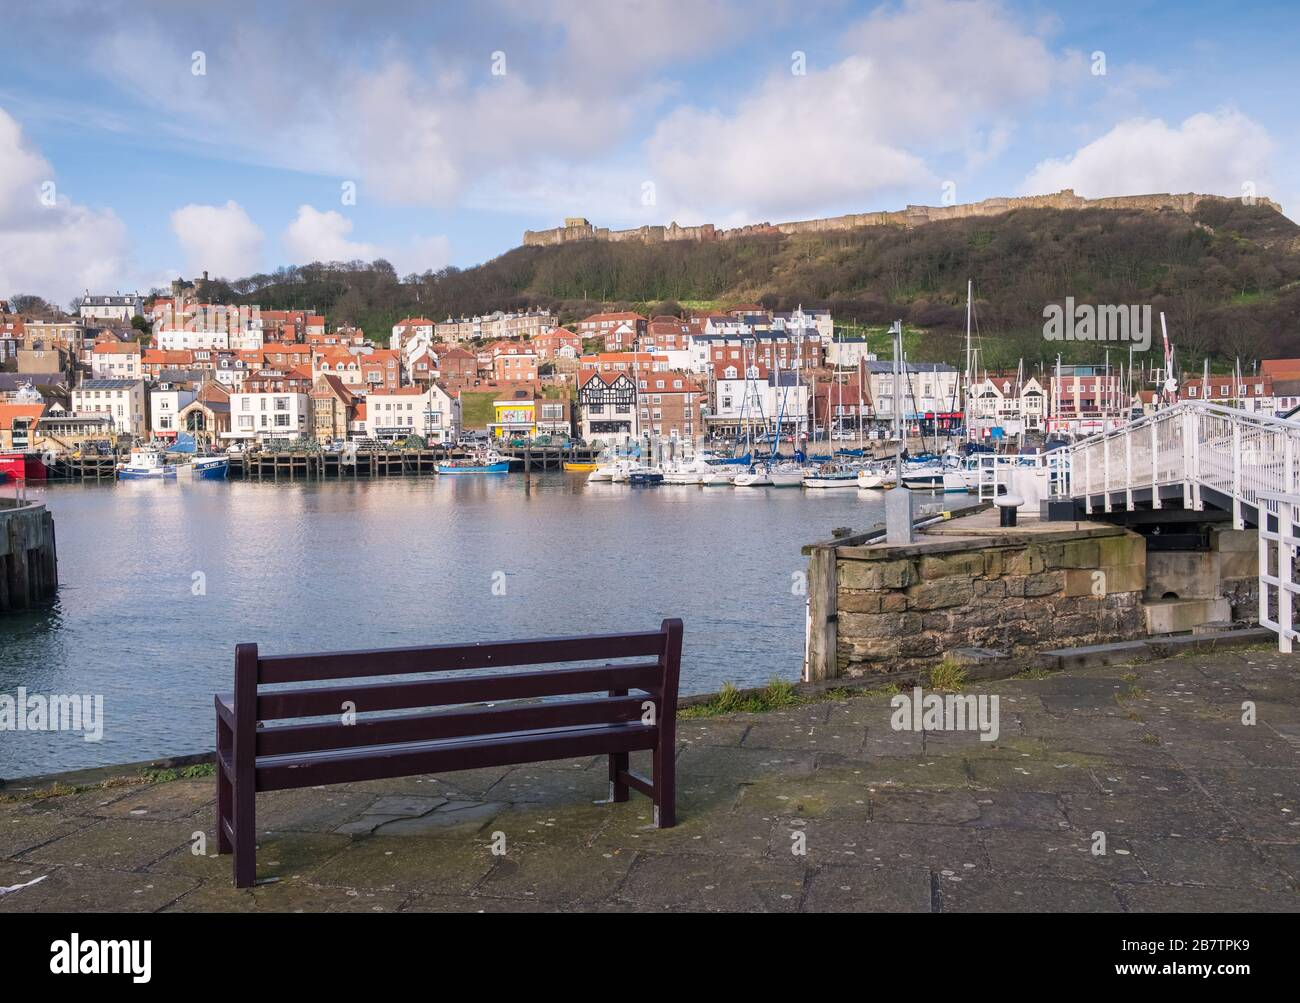 Scarborough harbour, a traditional seaside town on the north Yorkshire coast, England, UK Stock Photo